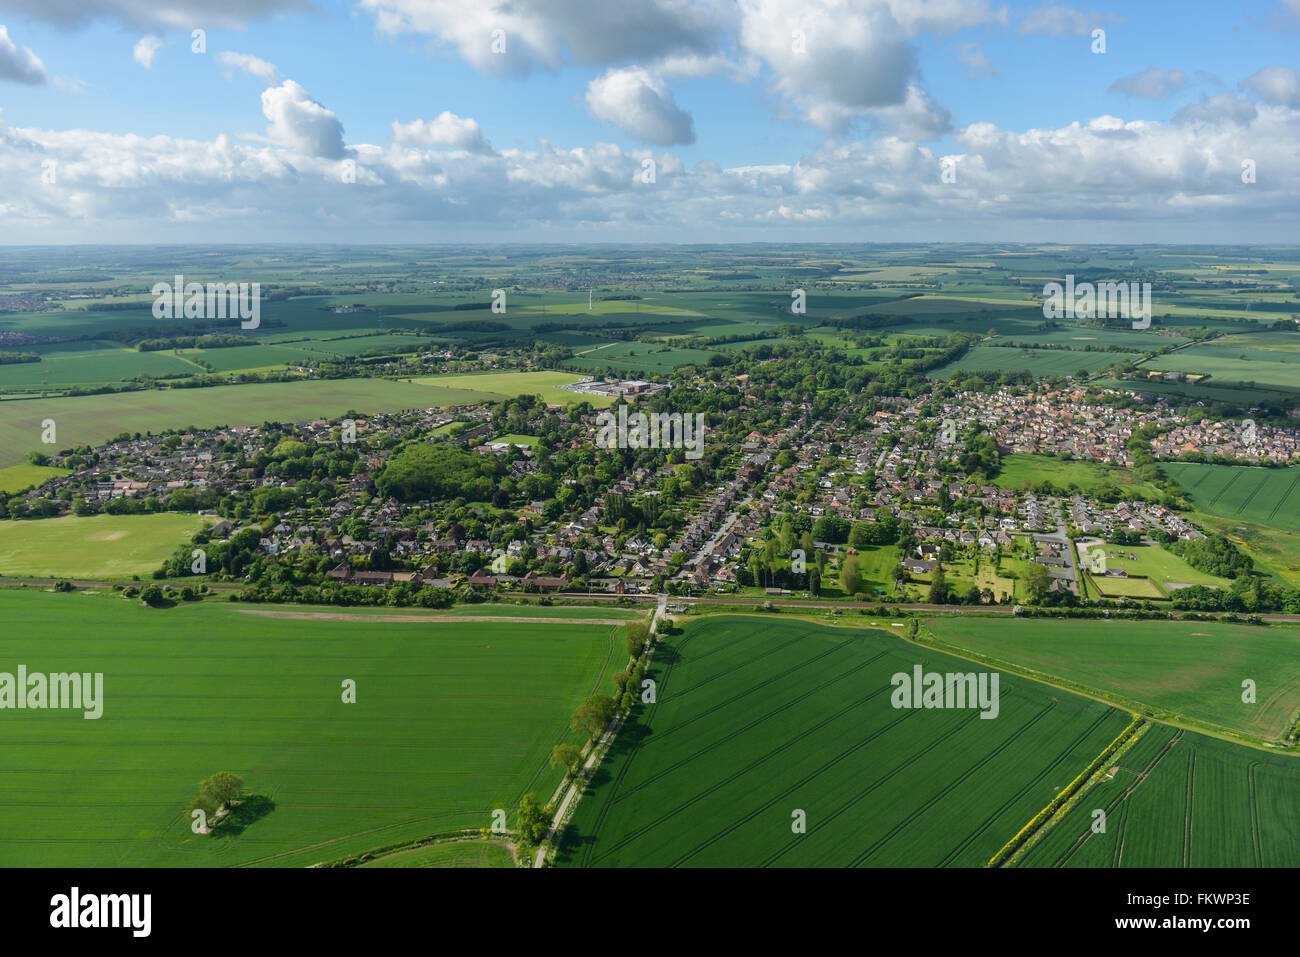 An aerial view of the North Lincolnshire village of Healing and surrounding countryside - Stock Image